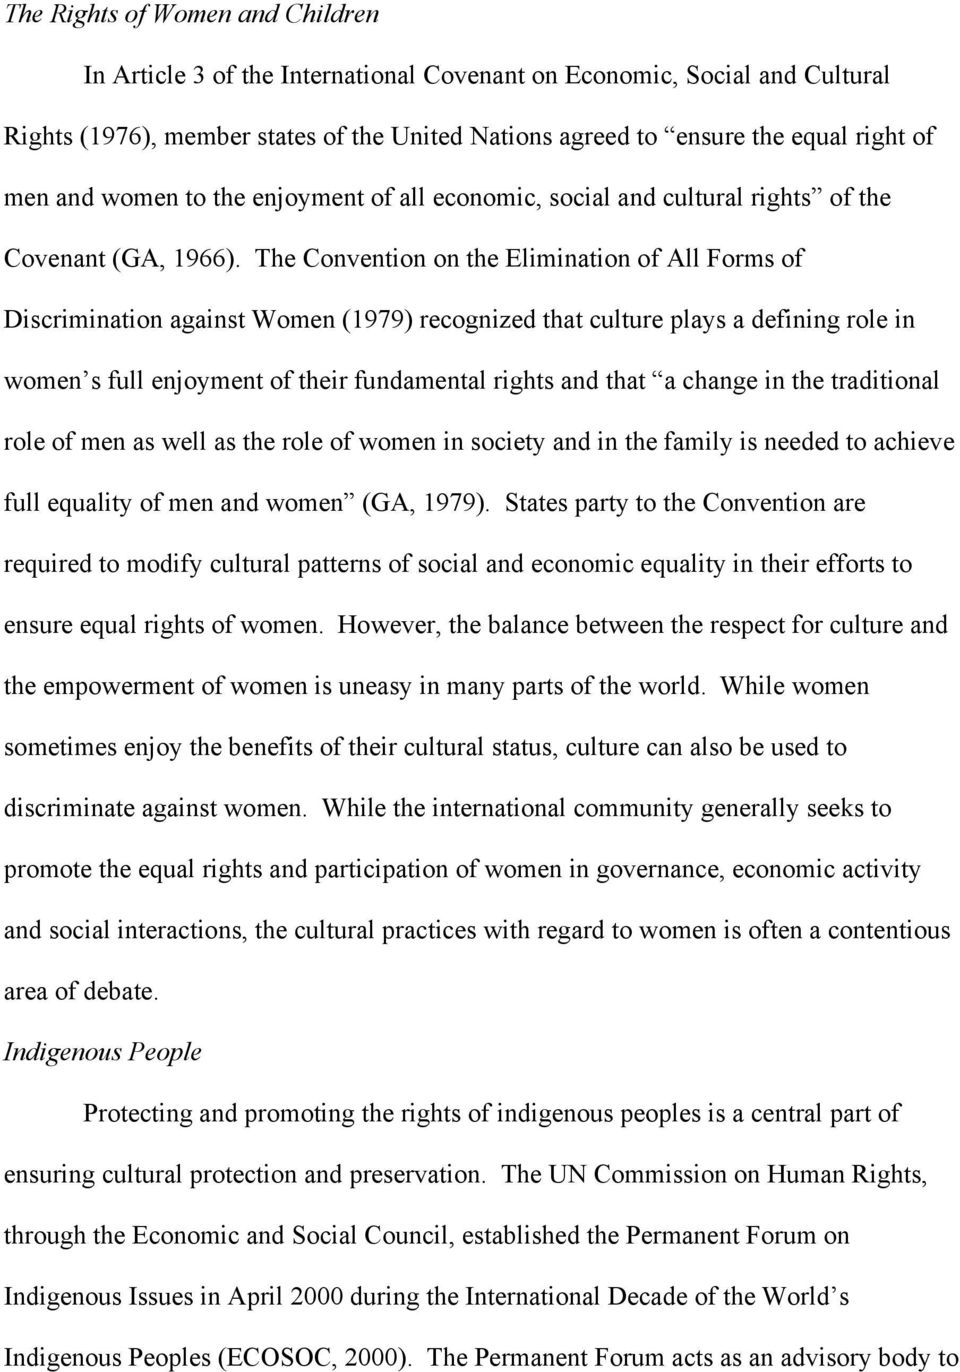 The Convention on the Elimination of All Forms of Discrimination against Women (1979) recognized that culture plays a defining role in women s full enjoyment of their fundamental rights and that a